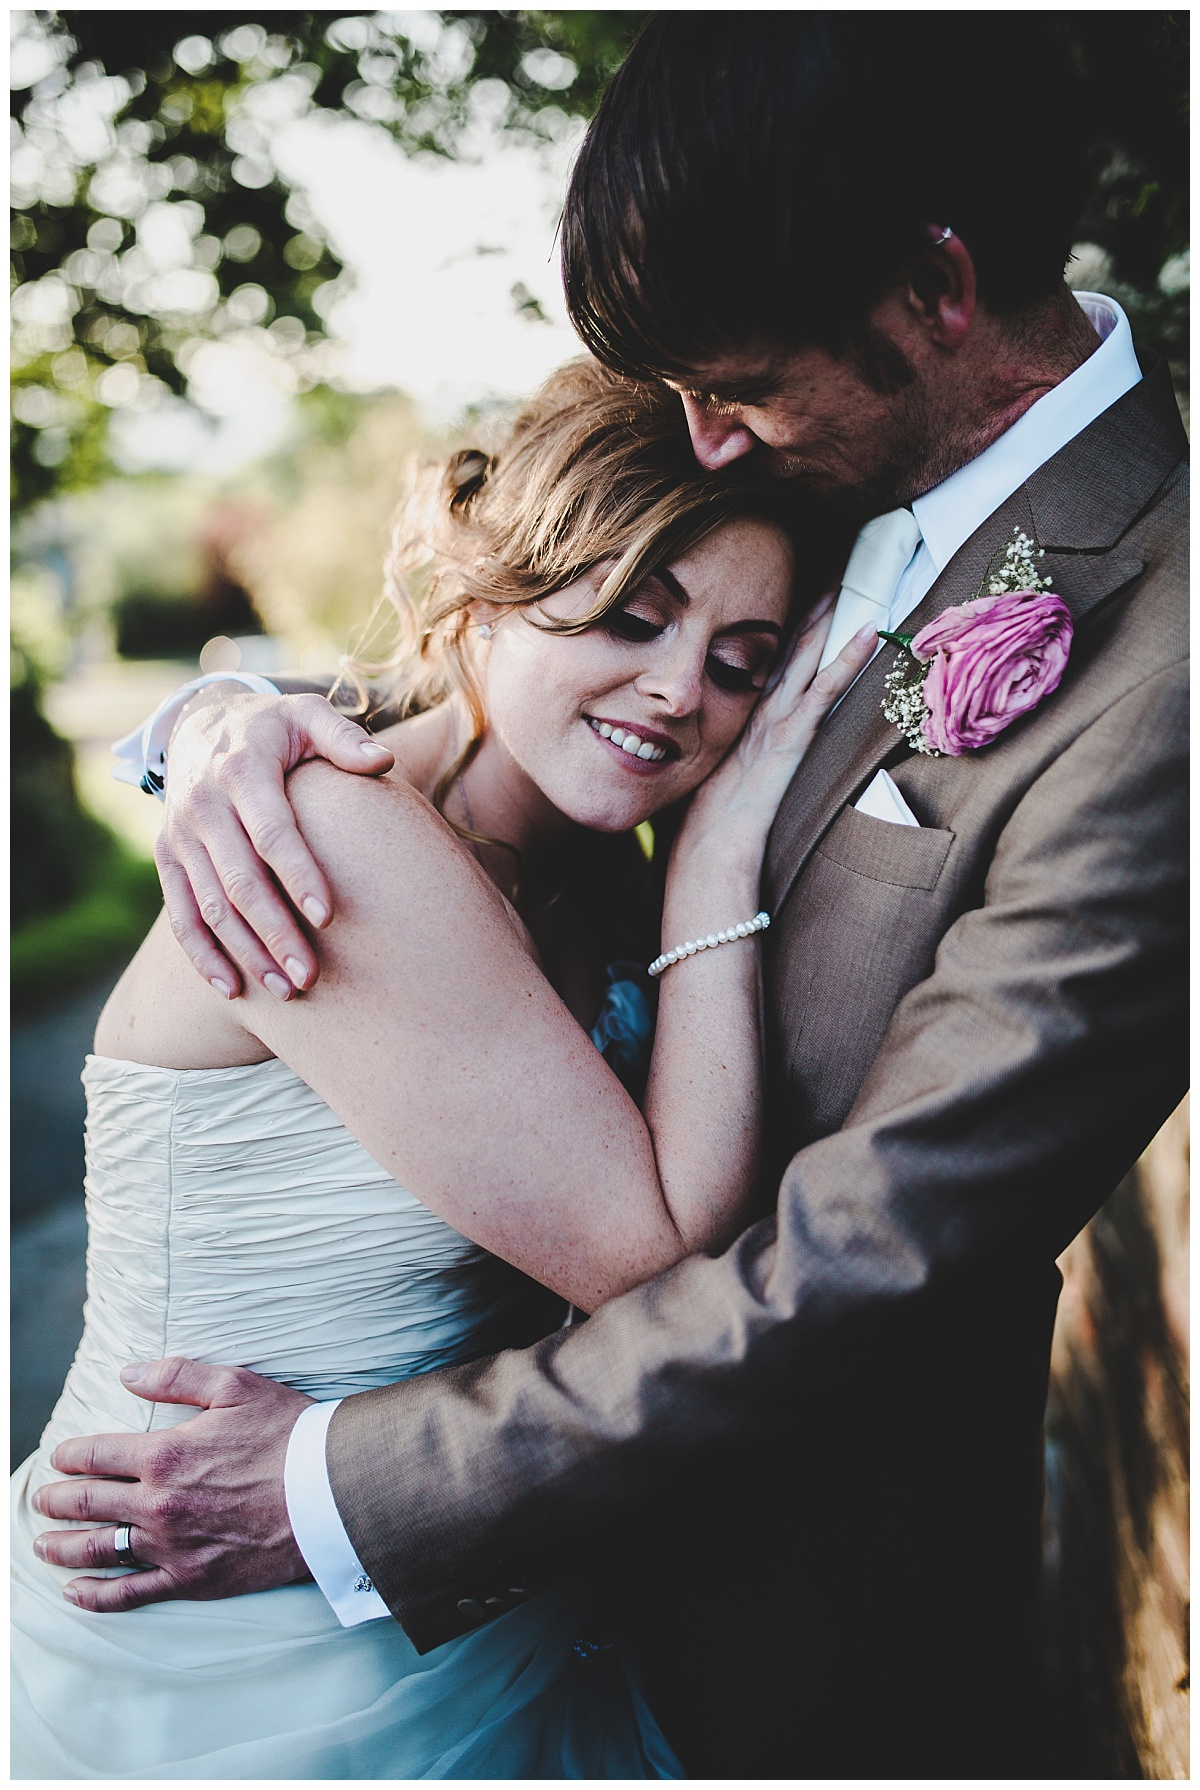 natural wedding photography in lancashire - bride cuddles groom